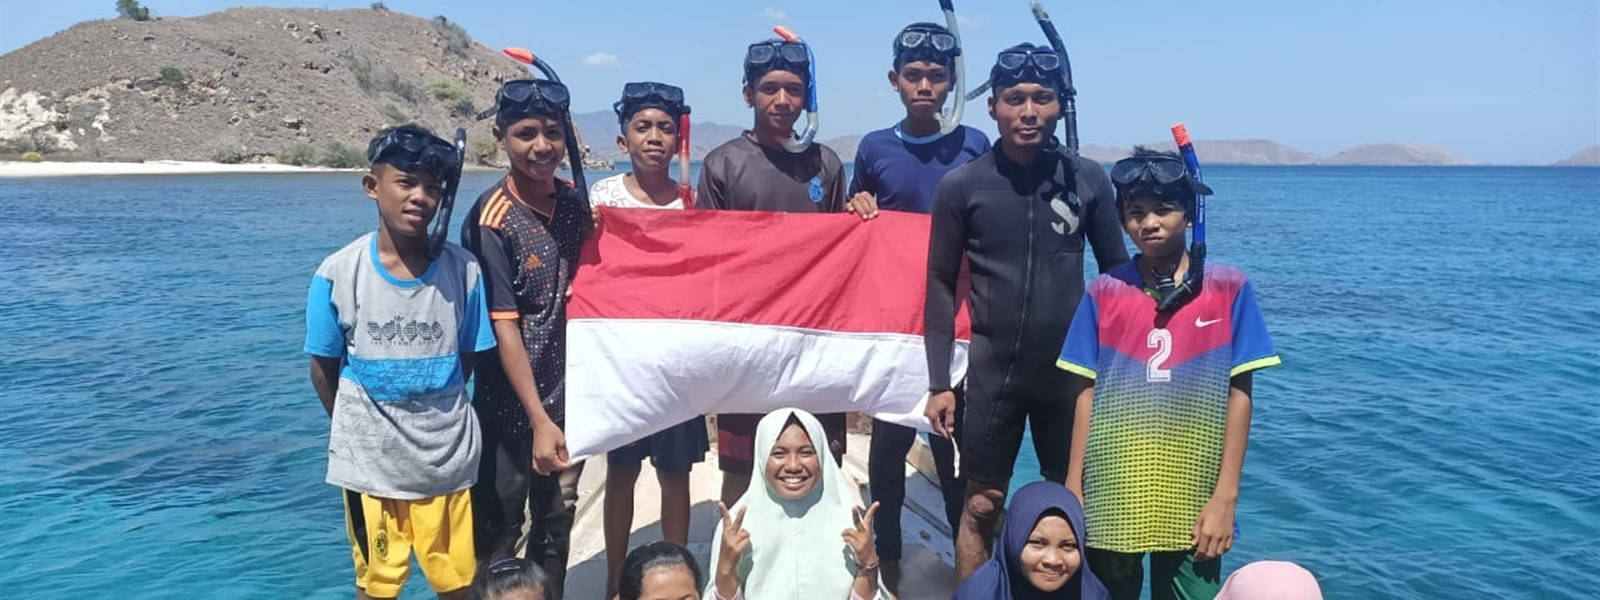 Group of divers on a boat holding the Indonesian flag.